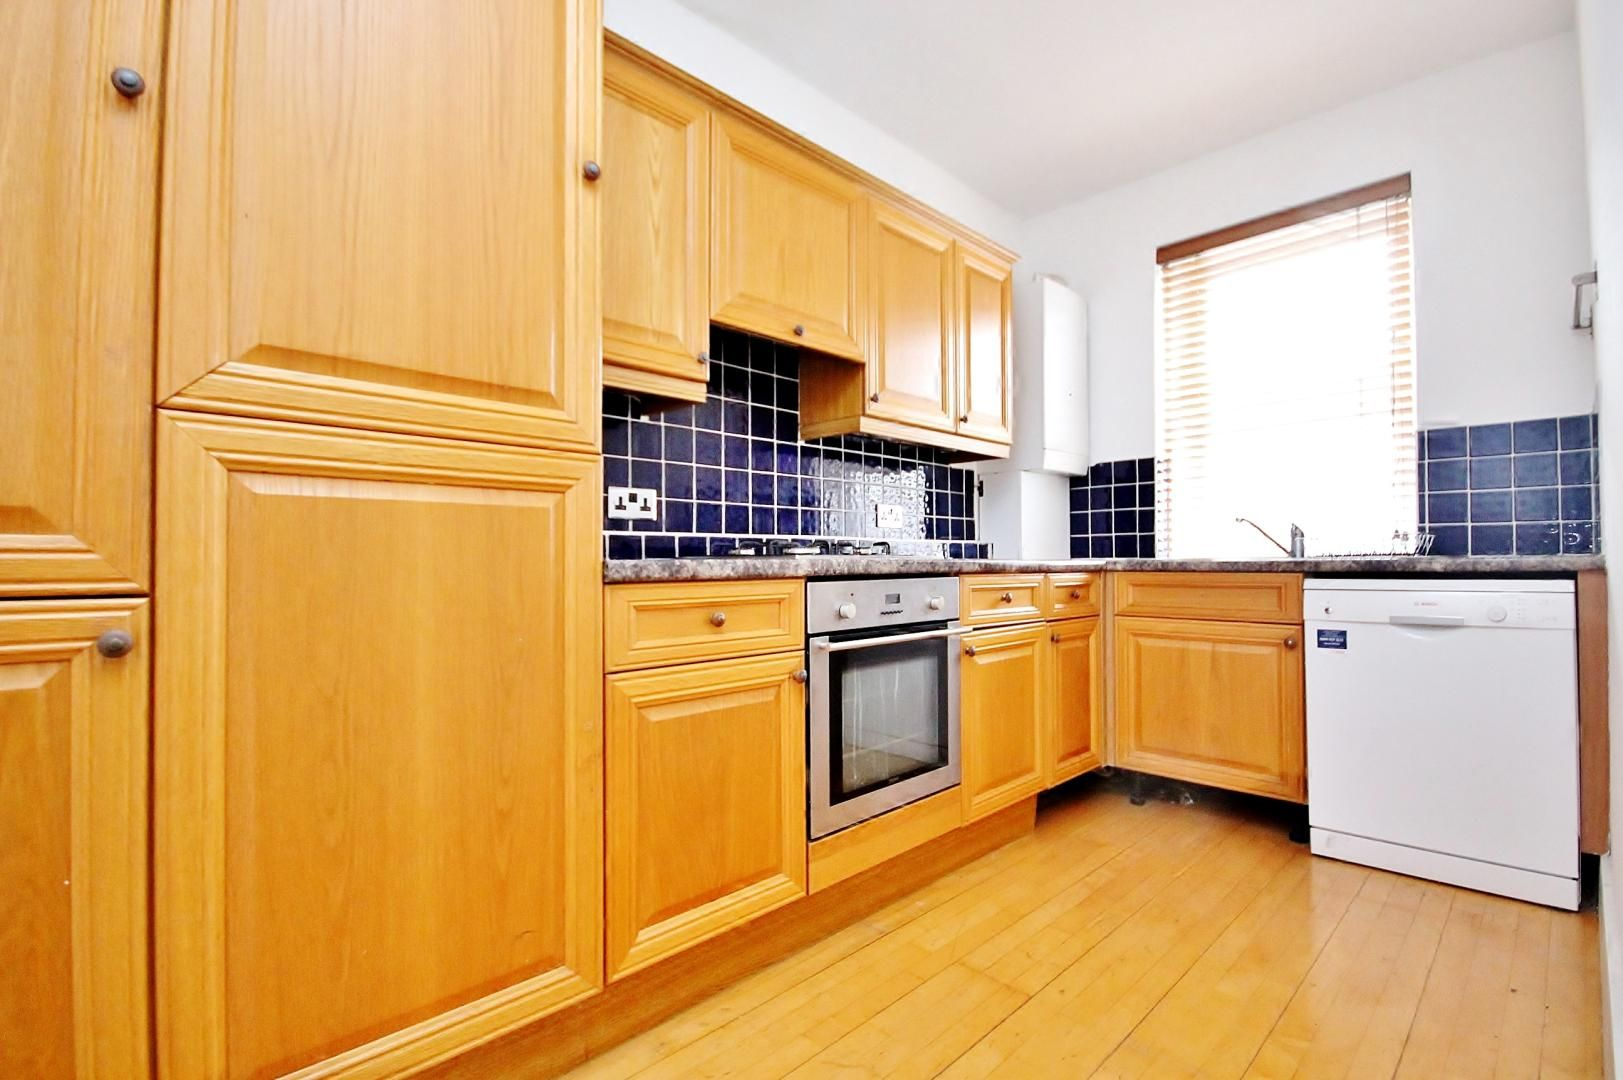 3 bed flat to rent in Germander Way, E15